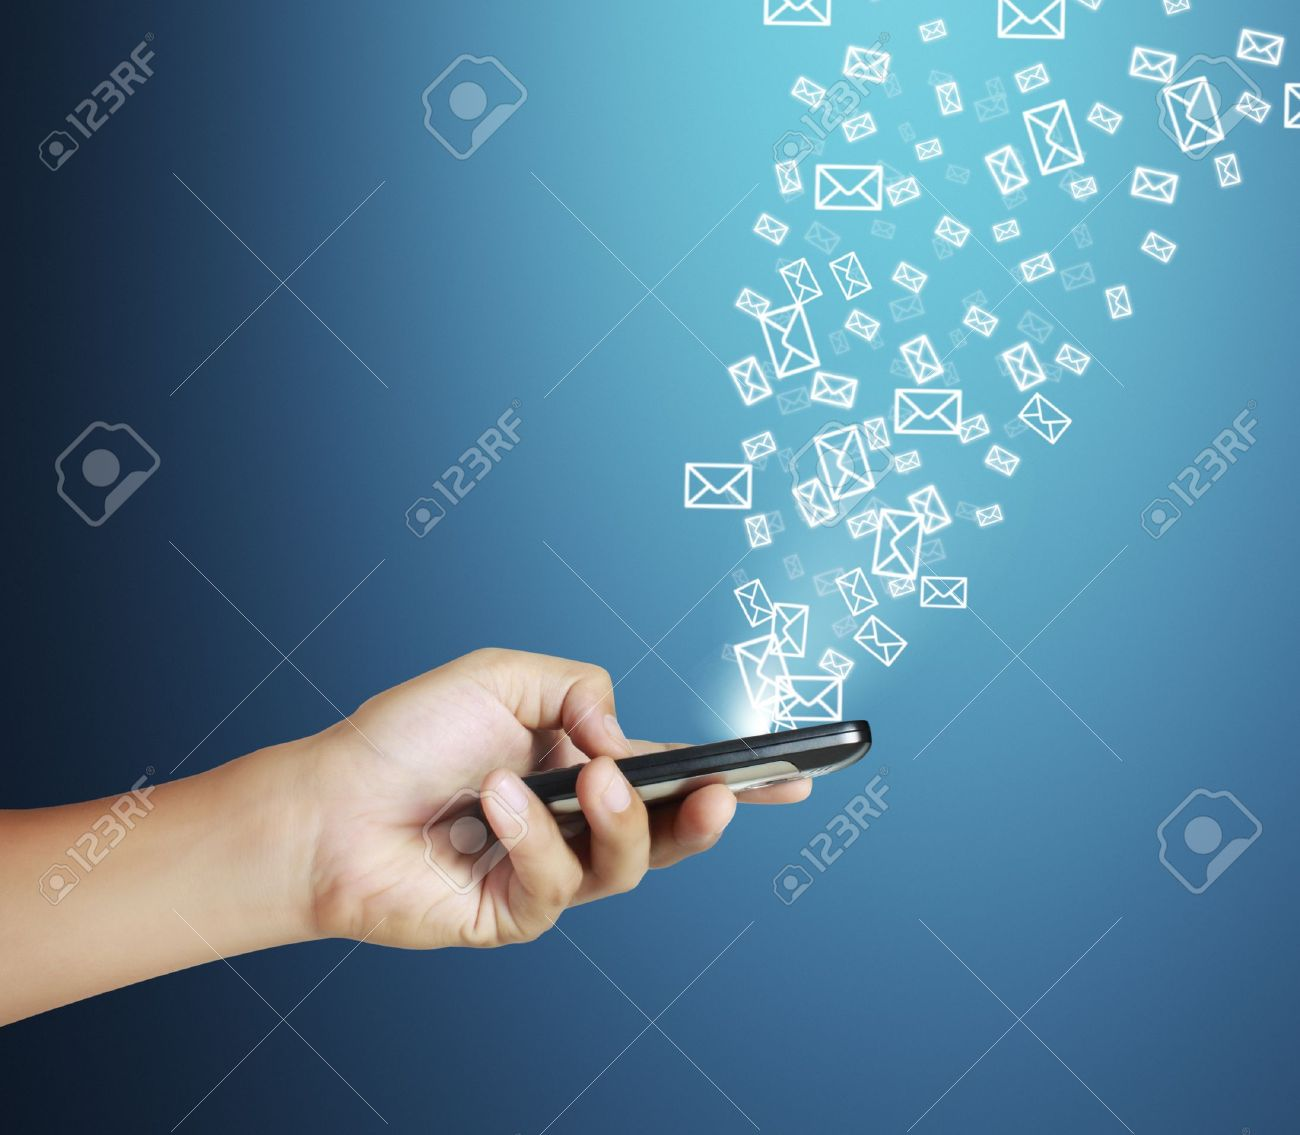 d3,Touch screen mobile phone  with blue background Stock Photo - 12526907